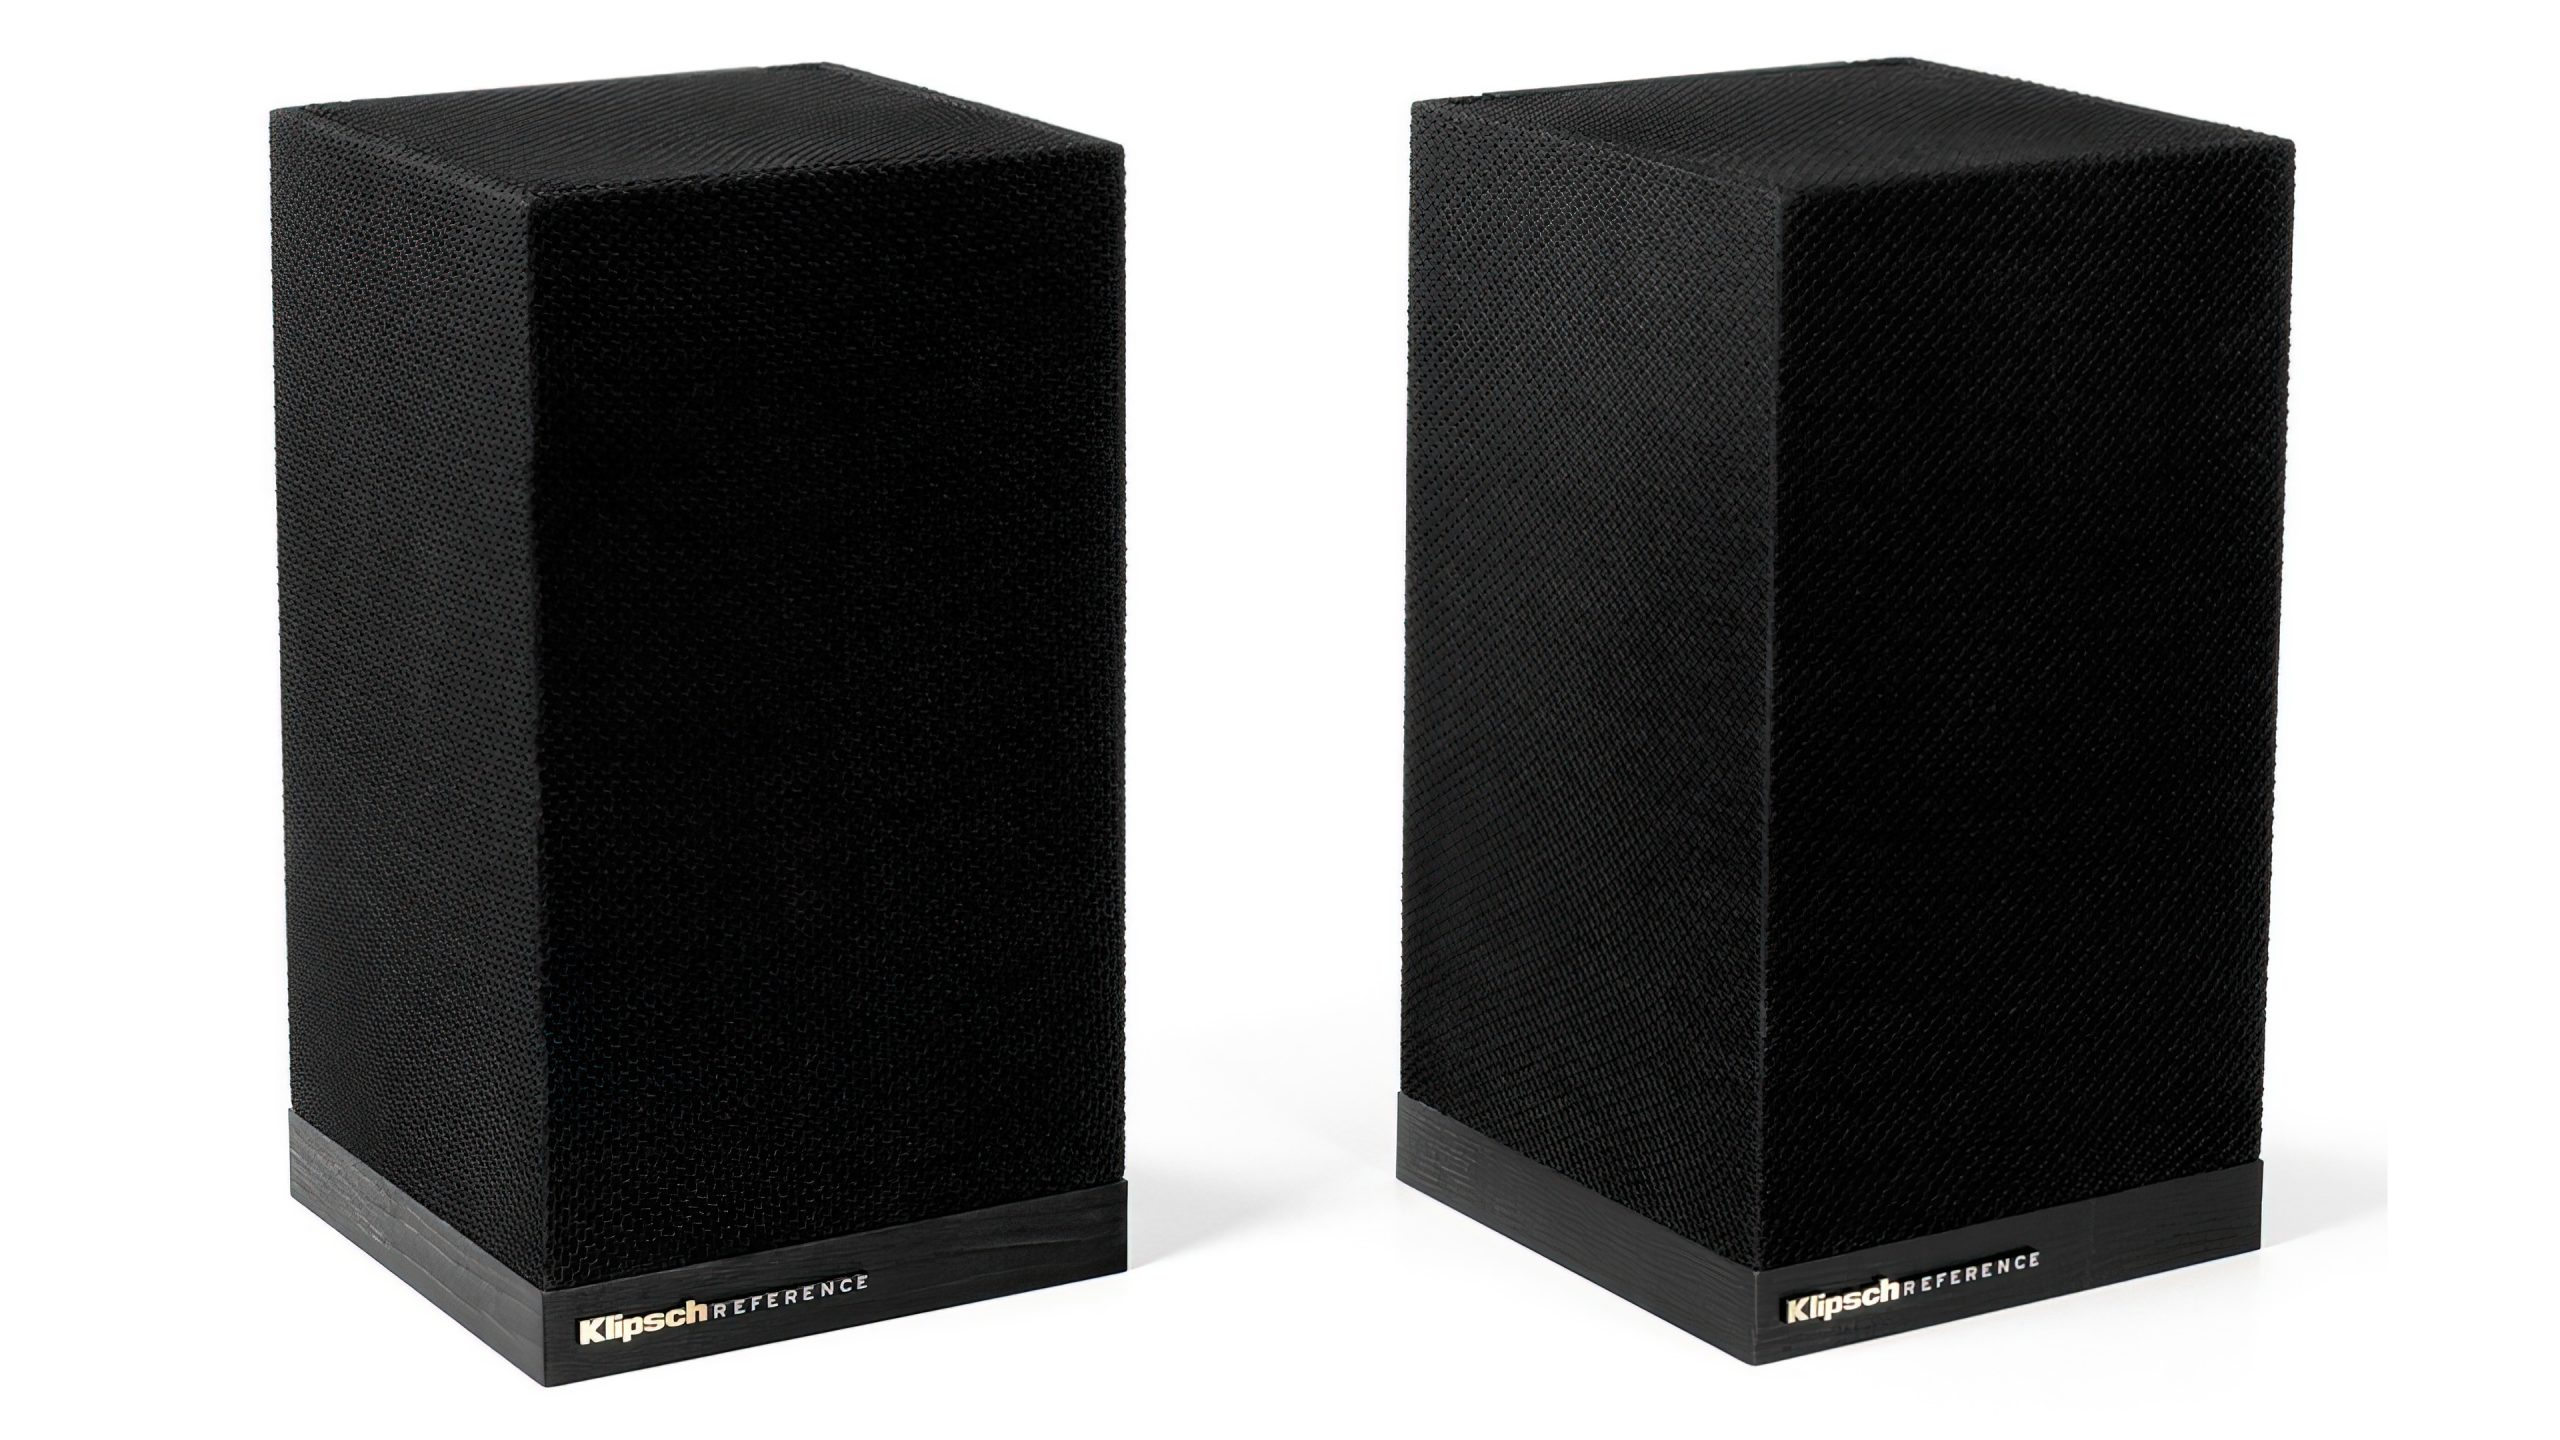 Kipsch Cinema 1200 rear speakers